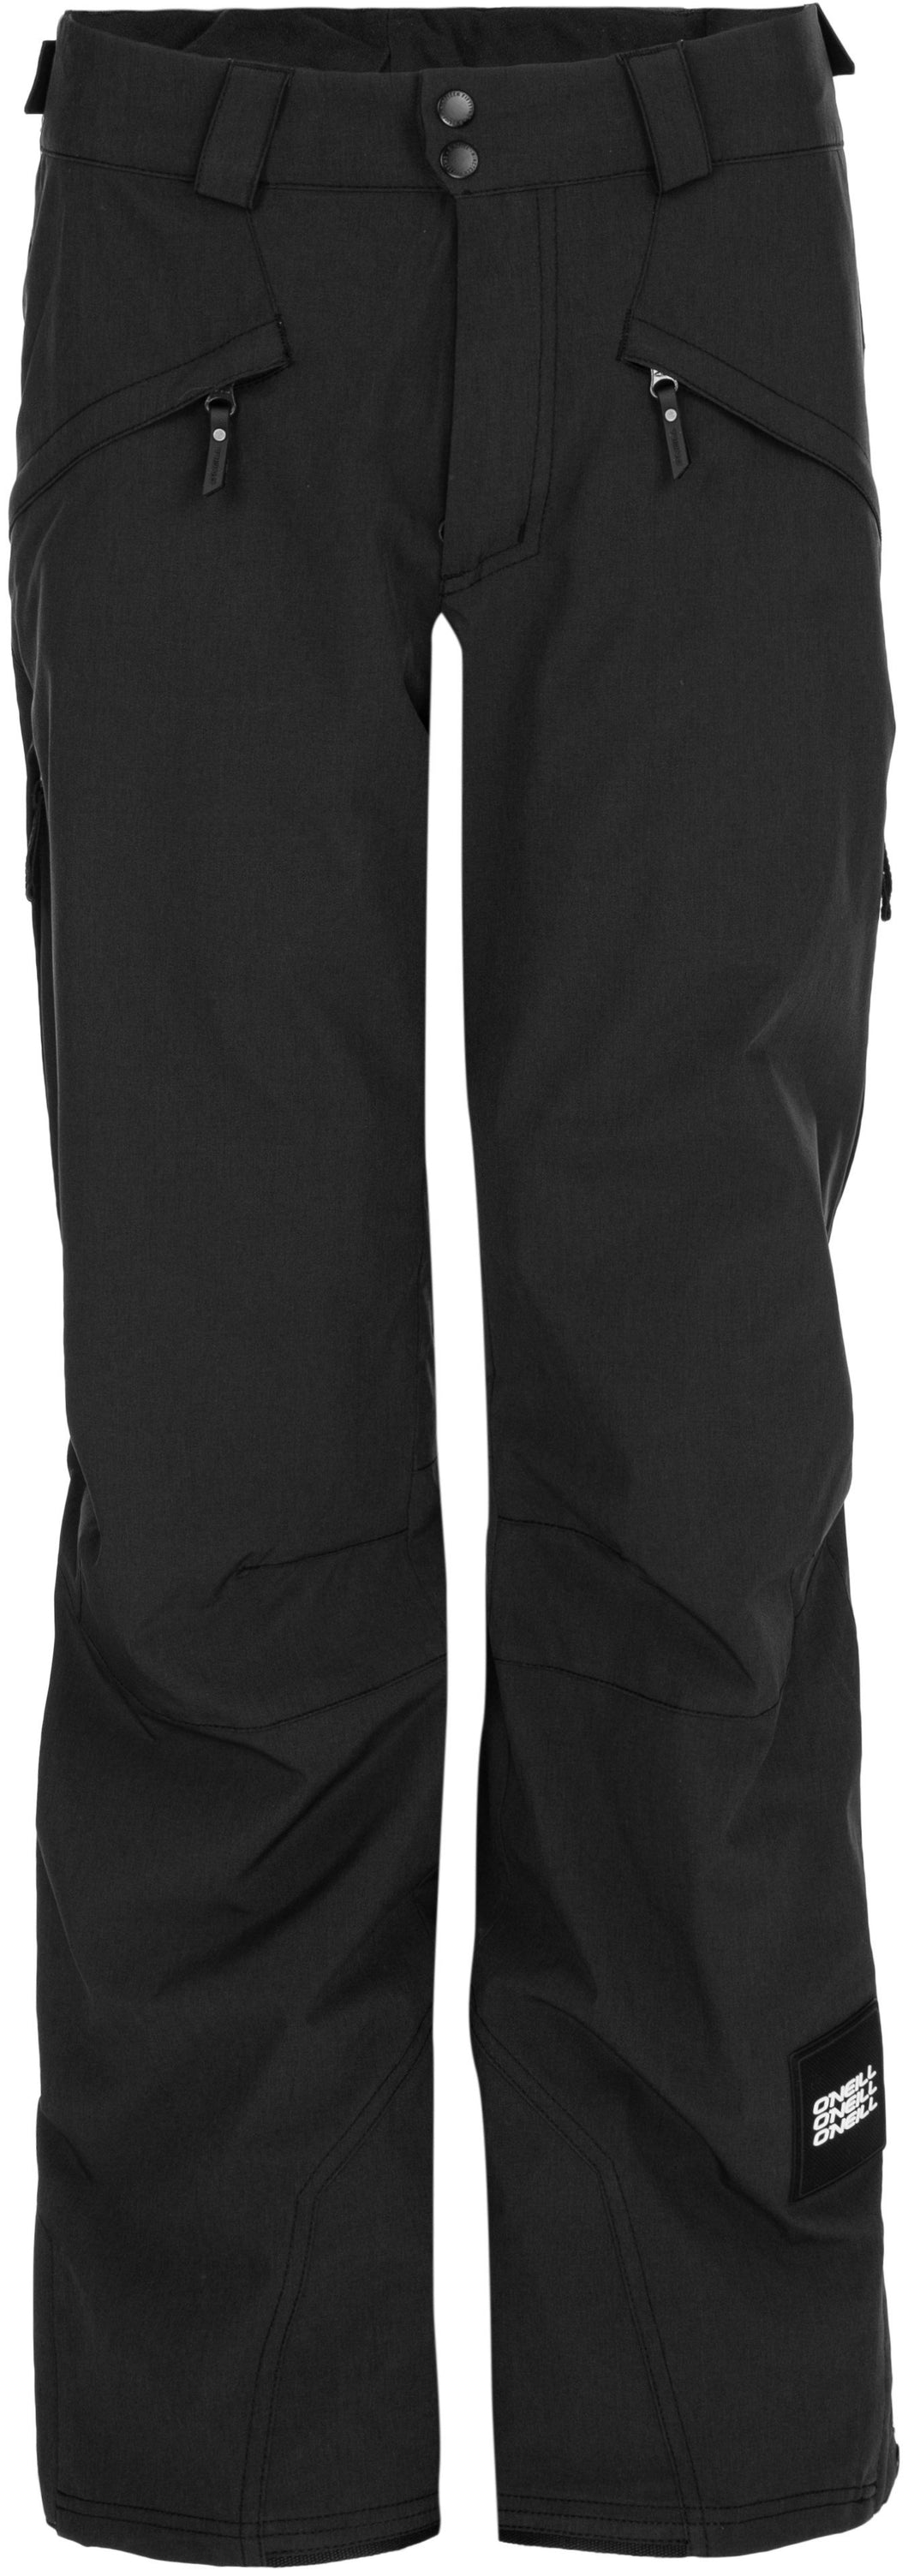 Oneill mens quartzite 10 k waterproof breathable winter snow ski snowboard pant black out front